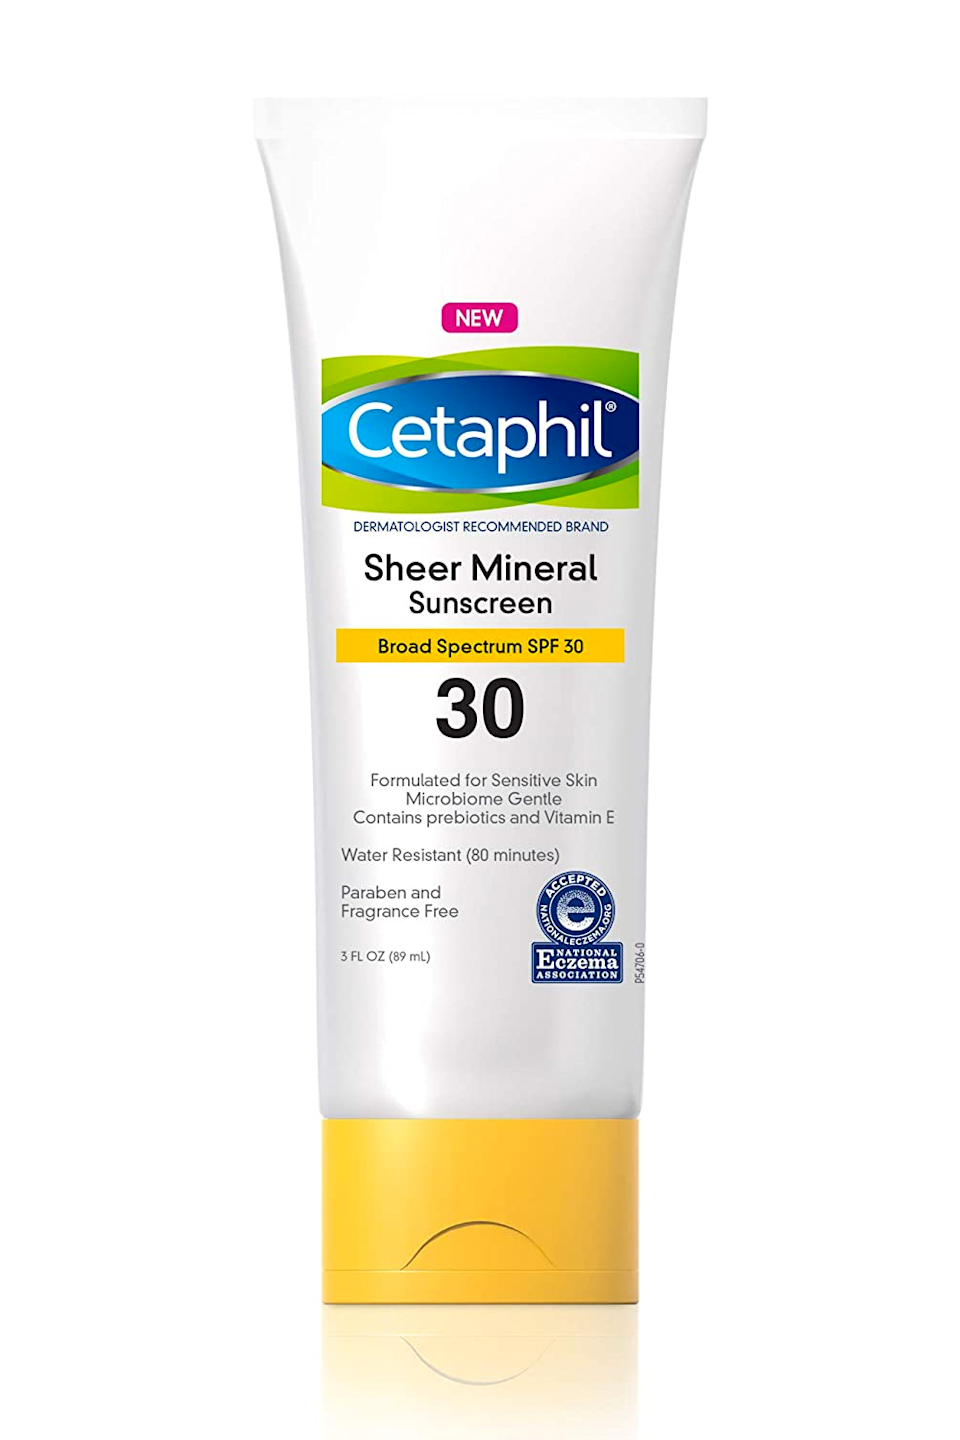 """<p><strong>Cetaphil</strong></p><p>amazon.com</p><p><strong>$13.49</strong></p><p><a href=""""https://www.amazon.com/dp/B08HH7NWVB?tag=syn-yahoo-20&ascsubtag=%5Bartid%7C10049.g.35863427%5Bsrc%7Cyahoo-us"""" rel=""""nofollow noopener"""" target=""""_blank"""" data-ylk=""""slk:Shop Now"""" class=""""link rapid-noclick-resp"""">Shop Now</a></p><p>This drugstore SPF is made especially for sensitive skin (lucky you!). You won't find any fragrances, parabens, or known irritants in its formula—just gentle <strong>mineral blockers, soothing <a href=""""https://www.cosmopolitan.com/style-beauty/beauty/a27609307/vitamin-e-for-skin-benefits-products/"""" rel=""""nofollow noopener"""" target=""""_blank"""" data-ylk=""""slk:vitamin E"""" class=""""link rapid-noclick-resp"""">vitamin E</a>, and water resistant coverage</strong>. P.S. You can use this one on your face <em>and</em> body.</p>"""